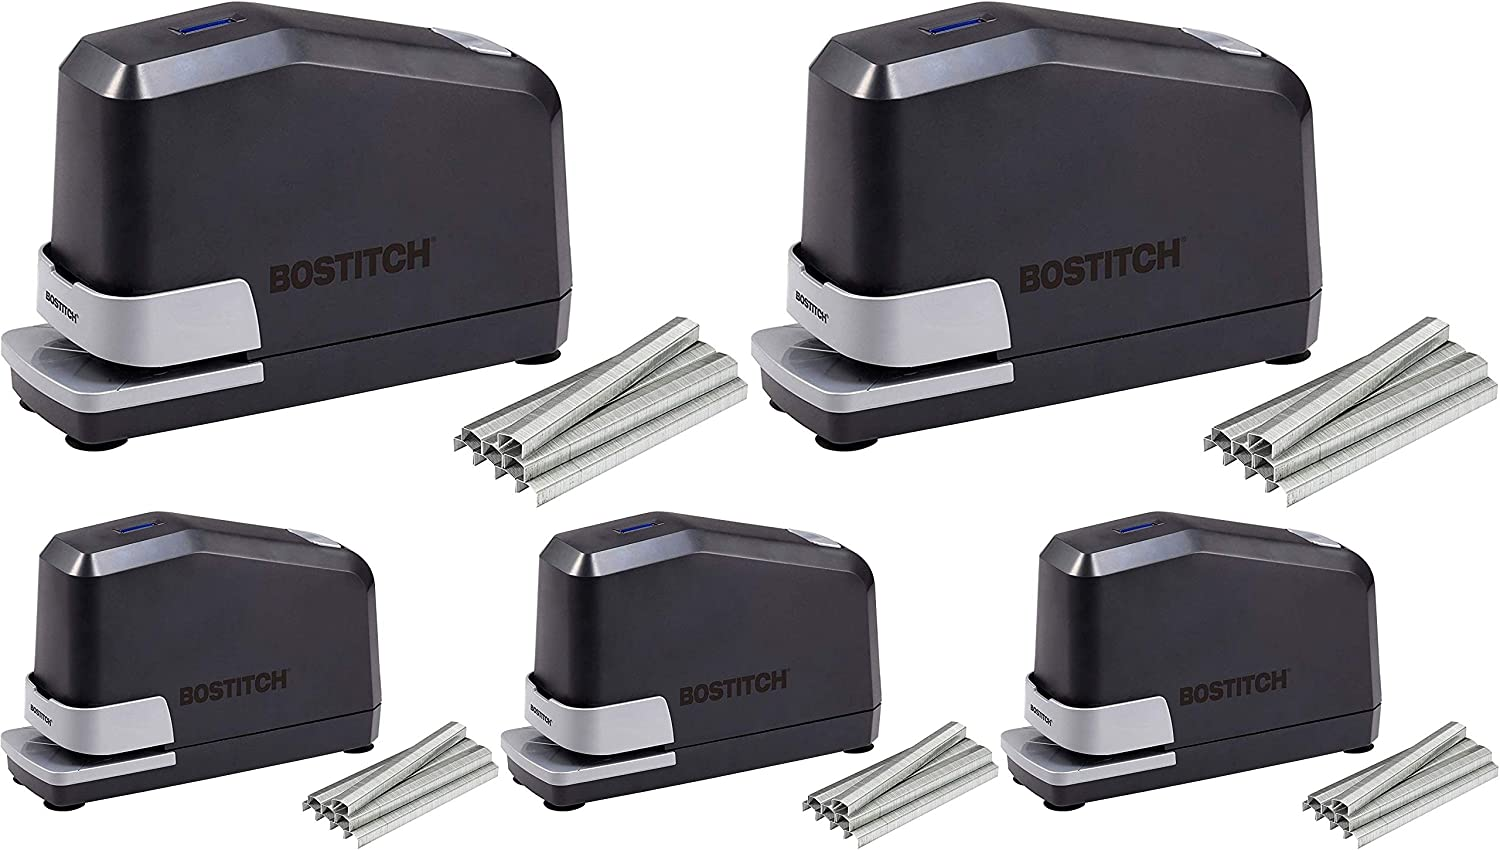 Double Heavy Duty No... Bostitch Impulse 45 Sheet Electric Stapler Value Pack